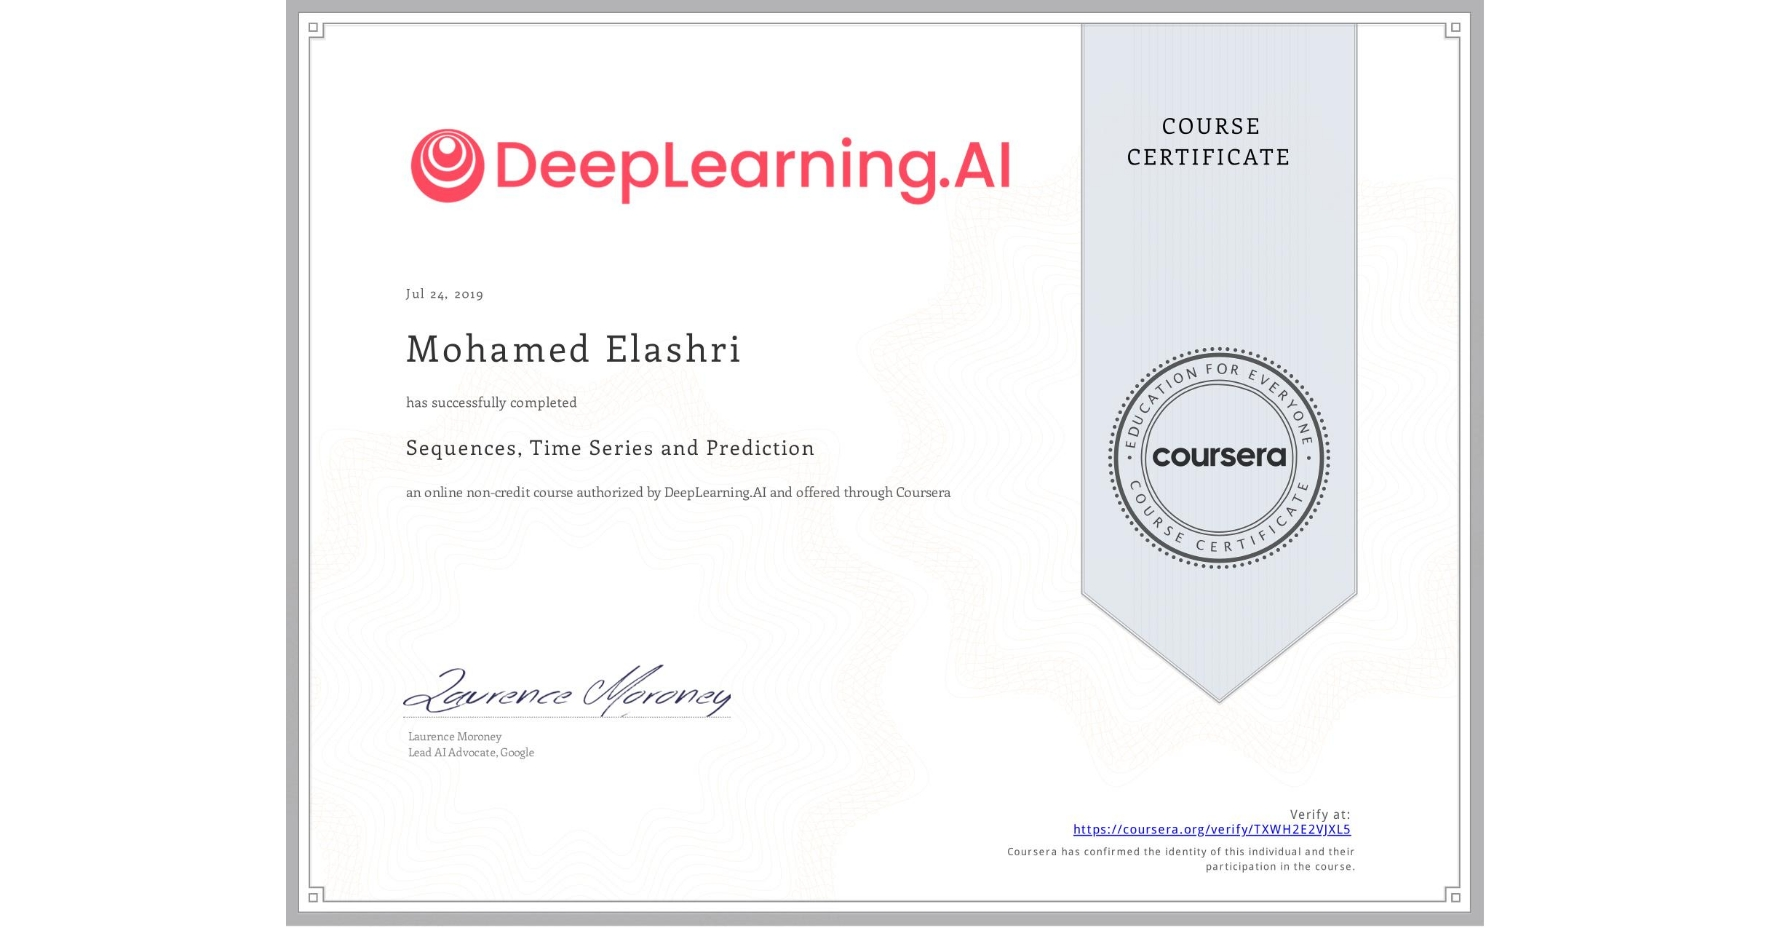 View certificate for Mohamed Elashri, Sequences, Time Series and Prediction, an online non-credit course authorized by DeepLearning.AI and offered through Coursera